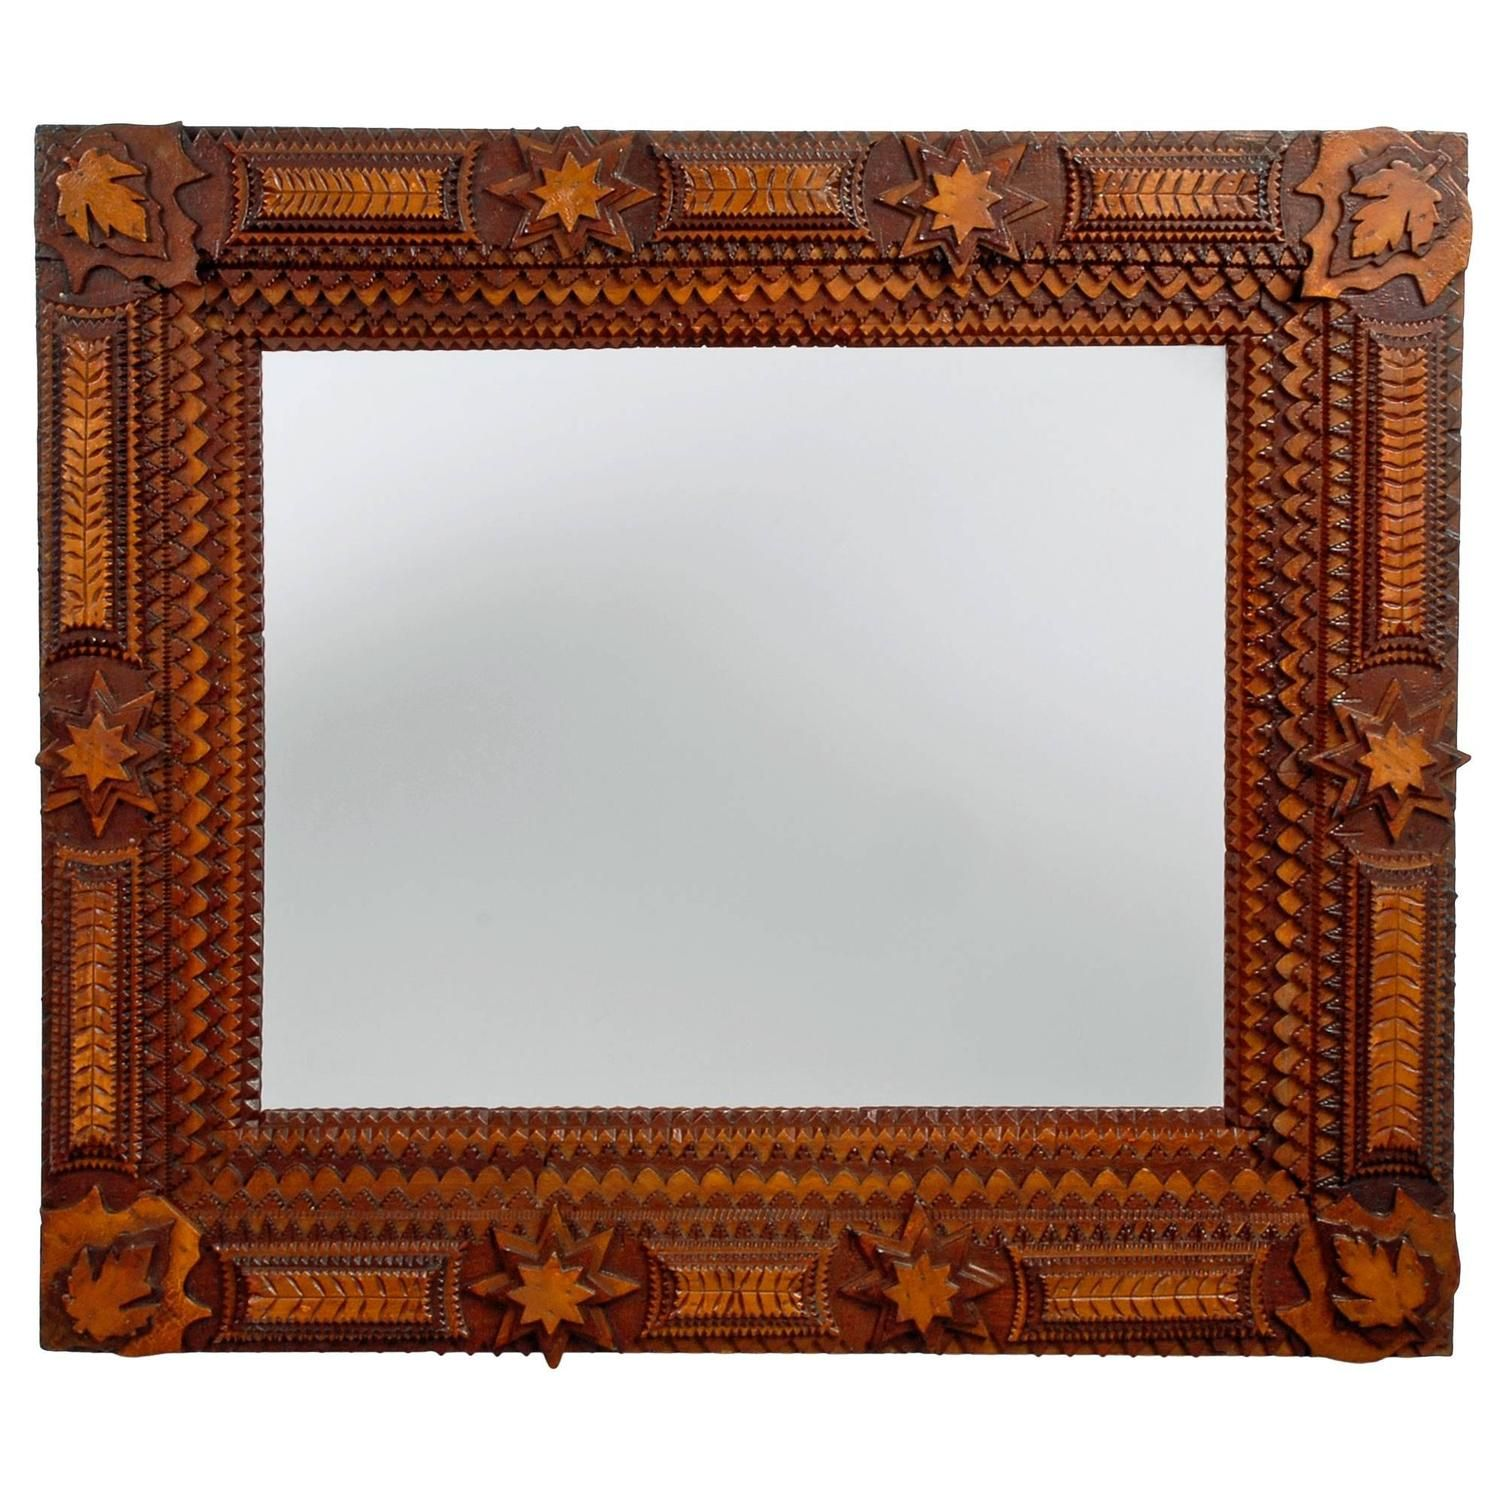 Impressive Complex Tramp Art Mirror with Stars | Star and Folk art